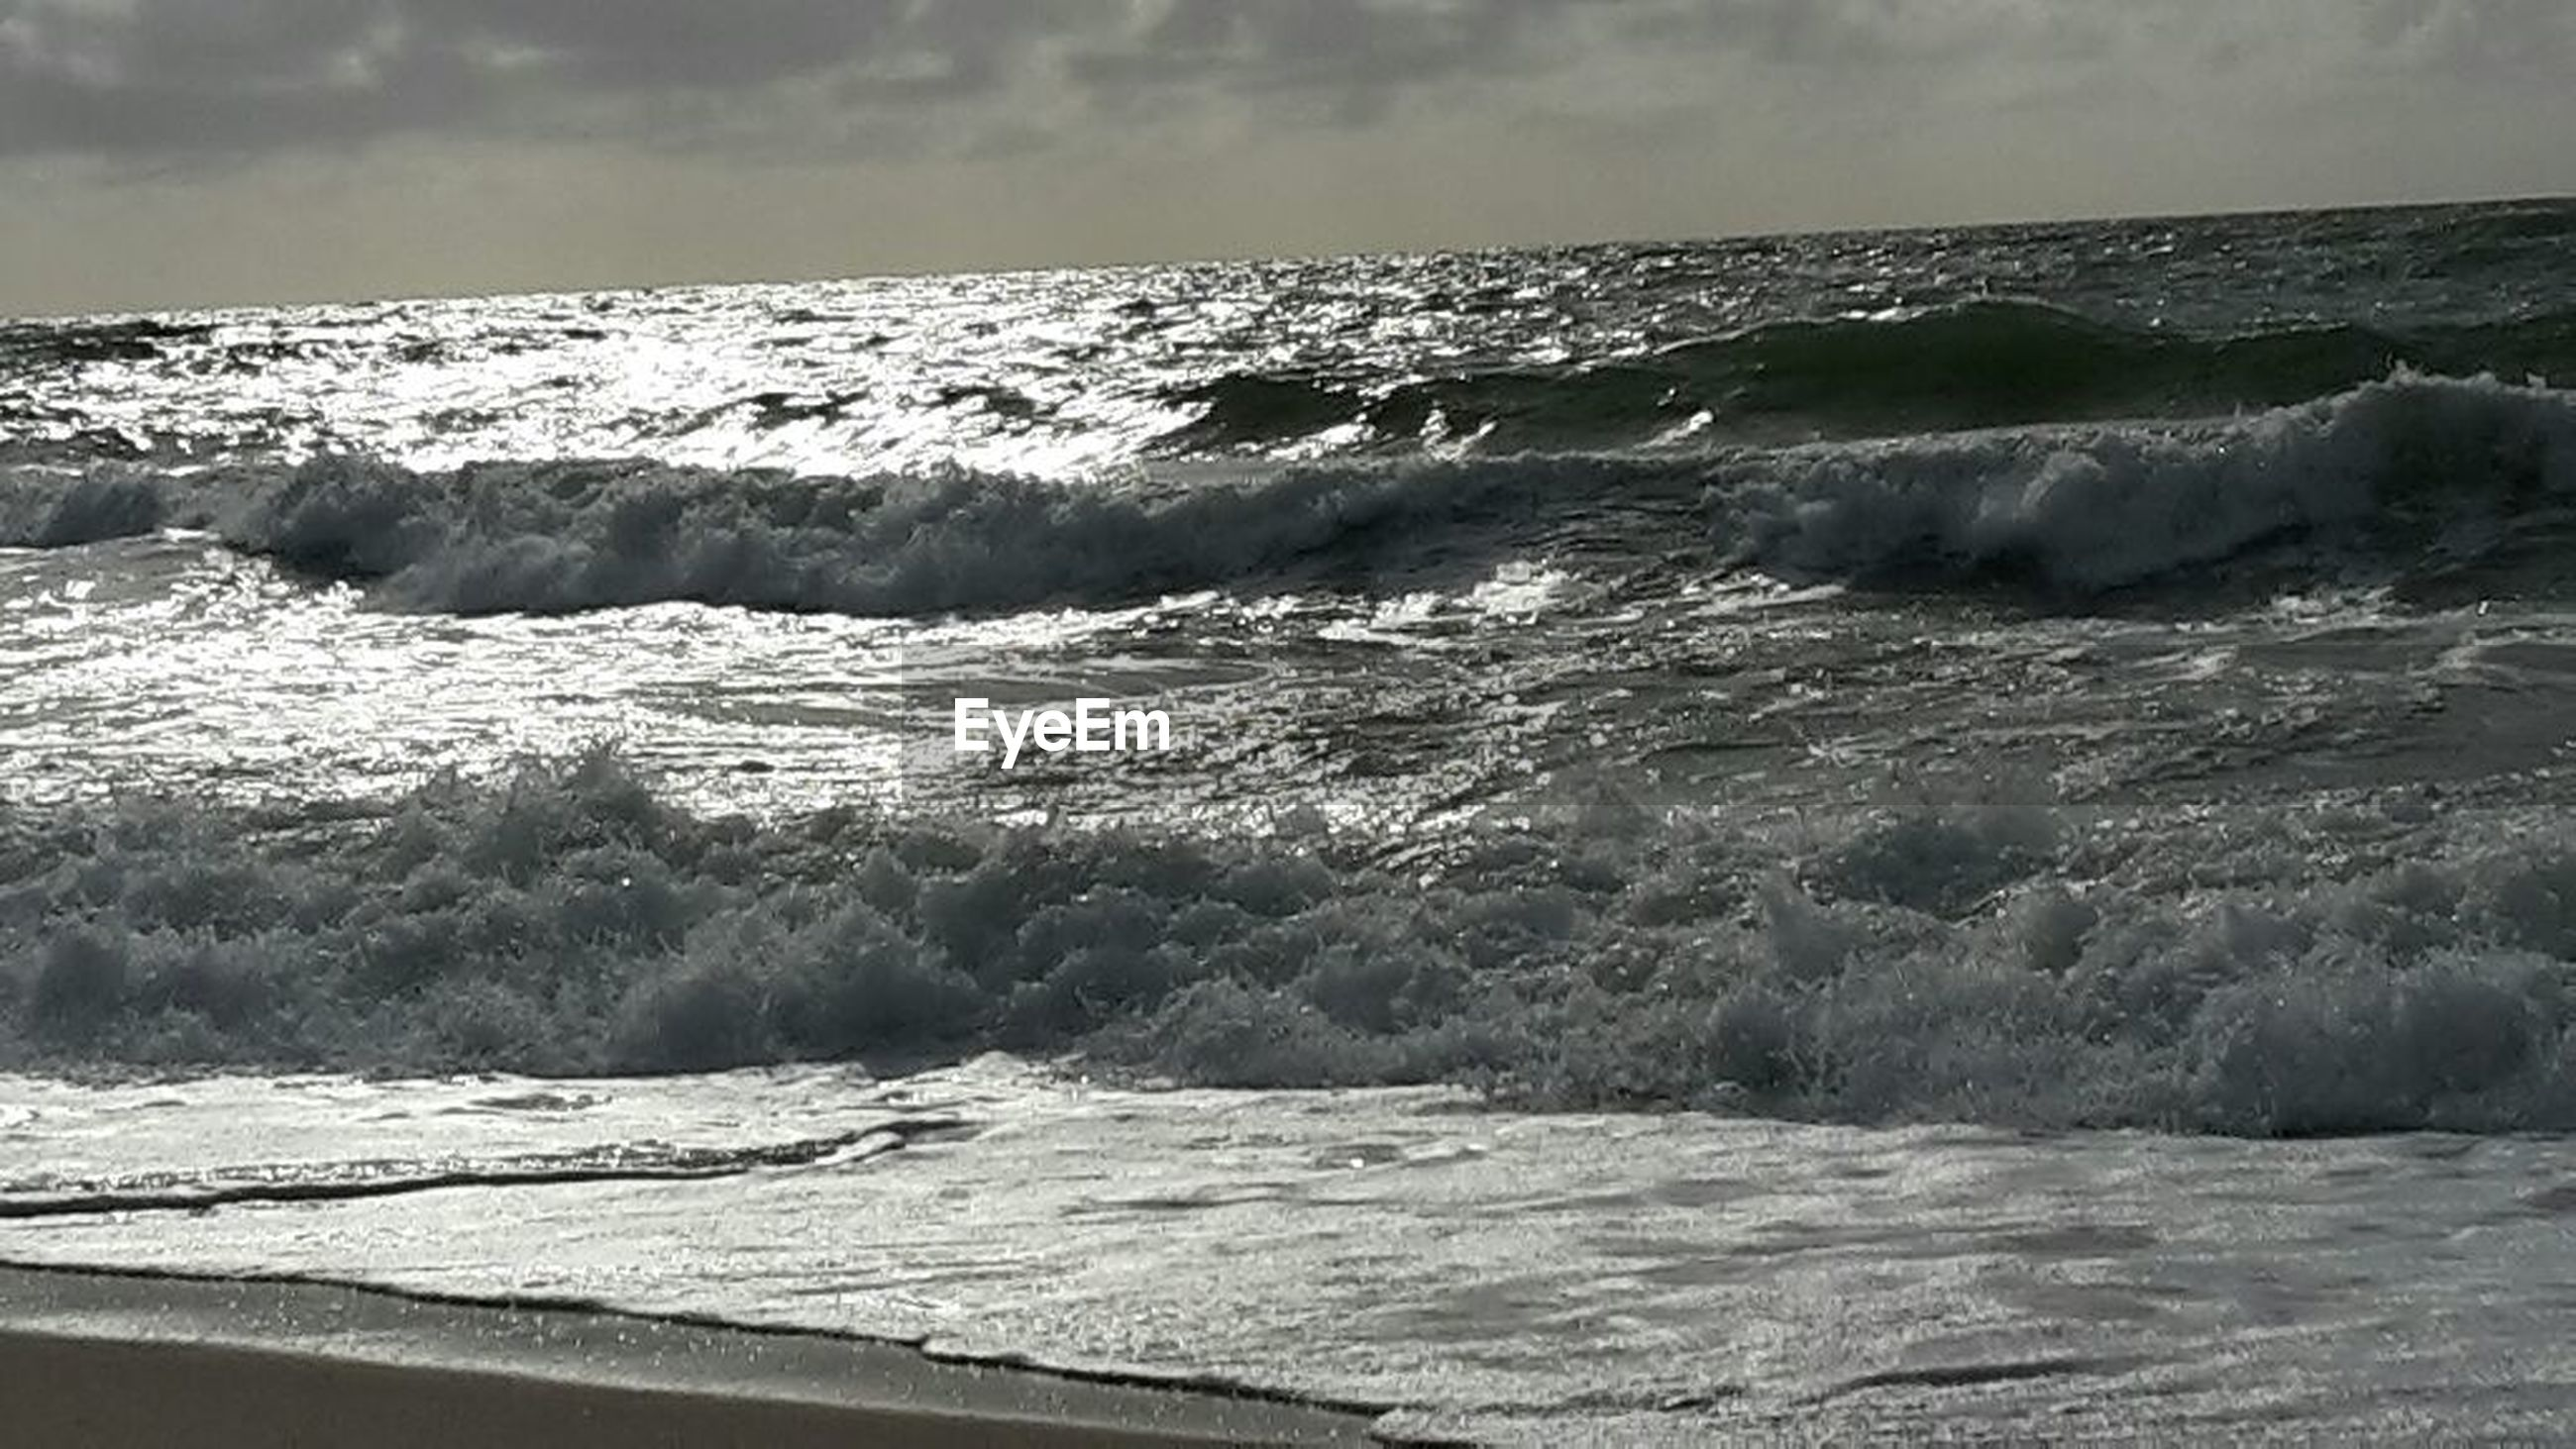 sea, wave, surf, water, beauty in nature, motion, nature, beach, horizon over water, power in nature, scenics, no people, outdoors, tide, sky, sand, day, crash, force